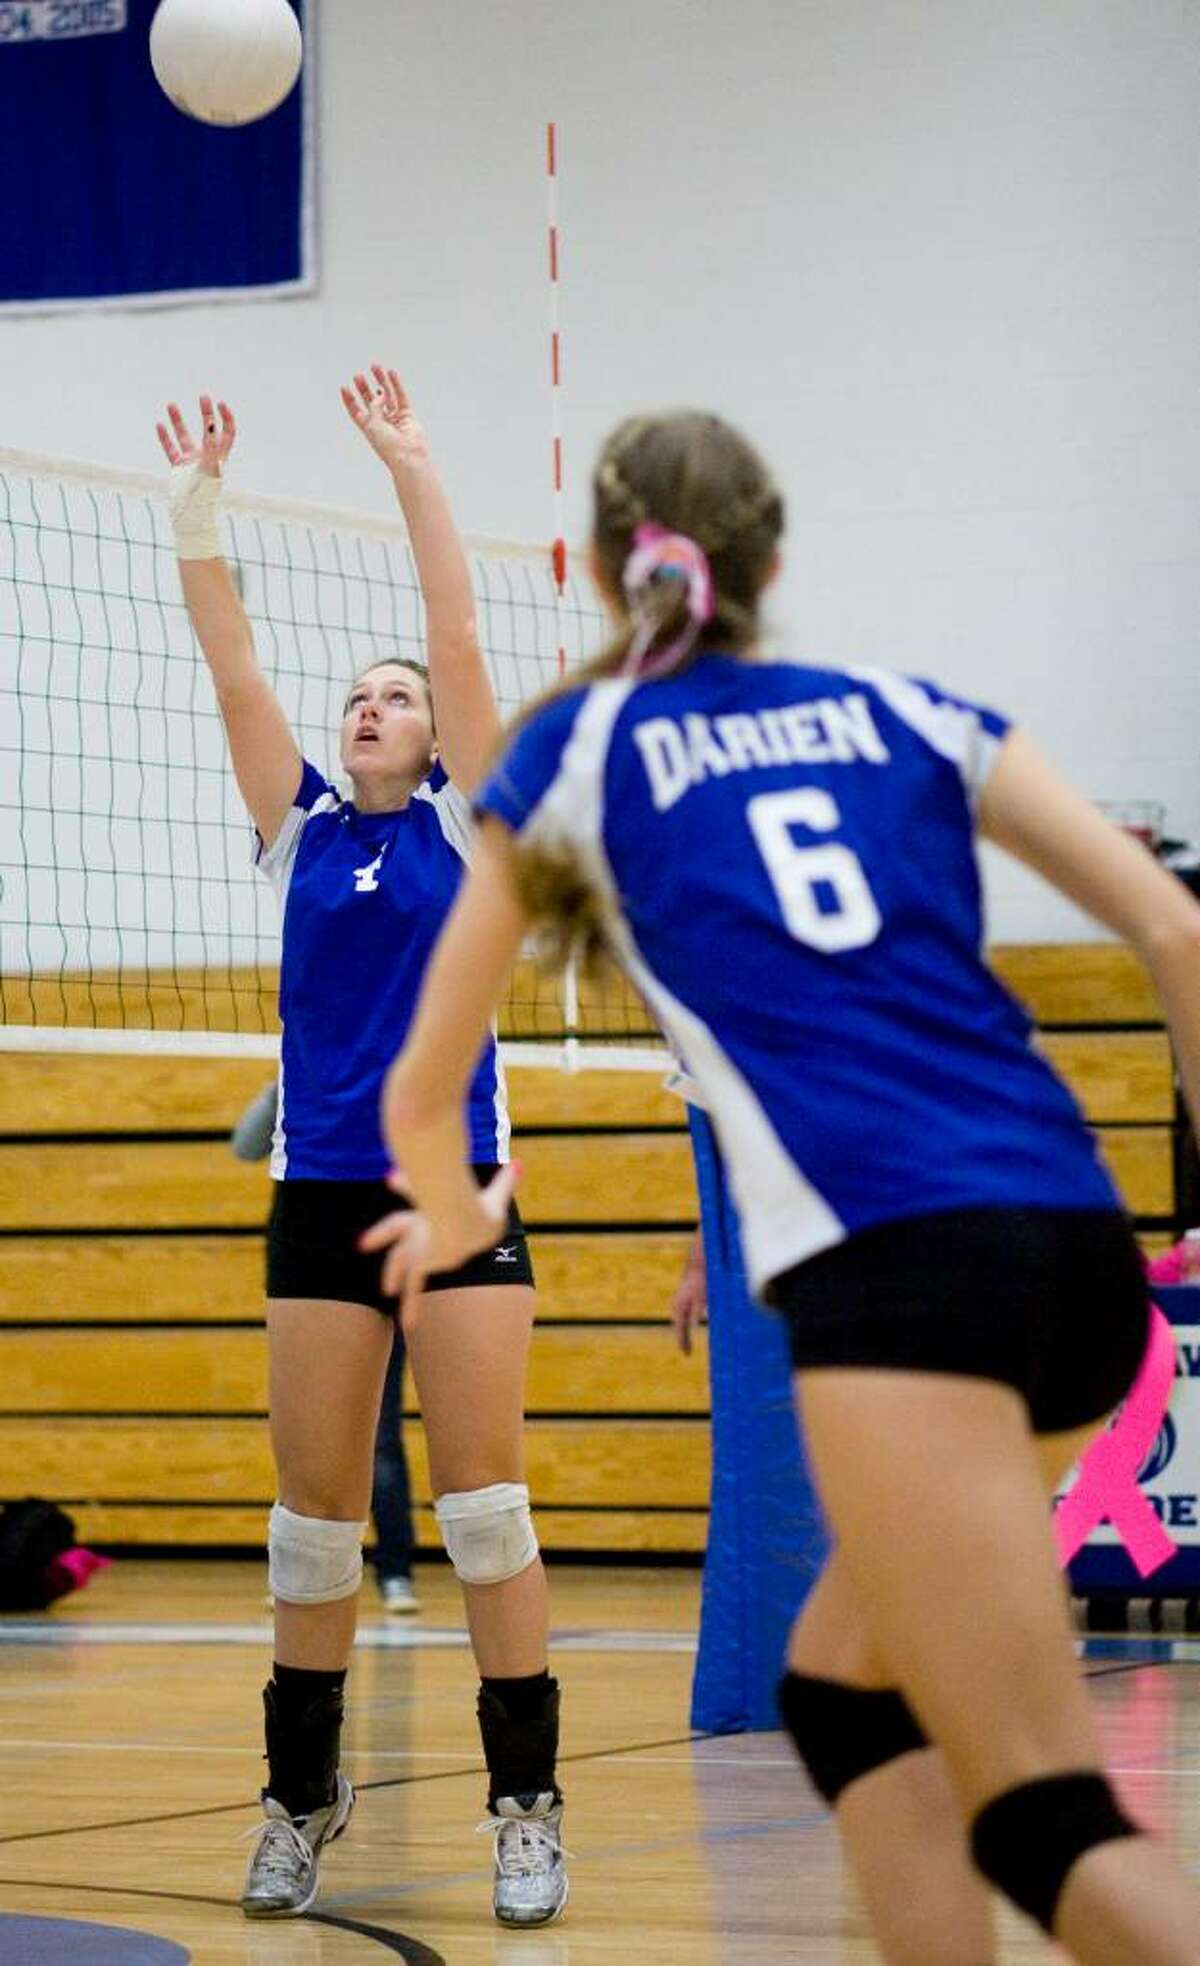 Darien High School's #4 Mackenzie Begley, left, sets the ball as teammate #6 Sarah Gorski, right, runs in from the right during a game against Wilton High School in girls volleyball in Darien.